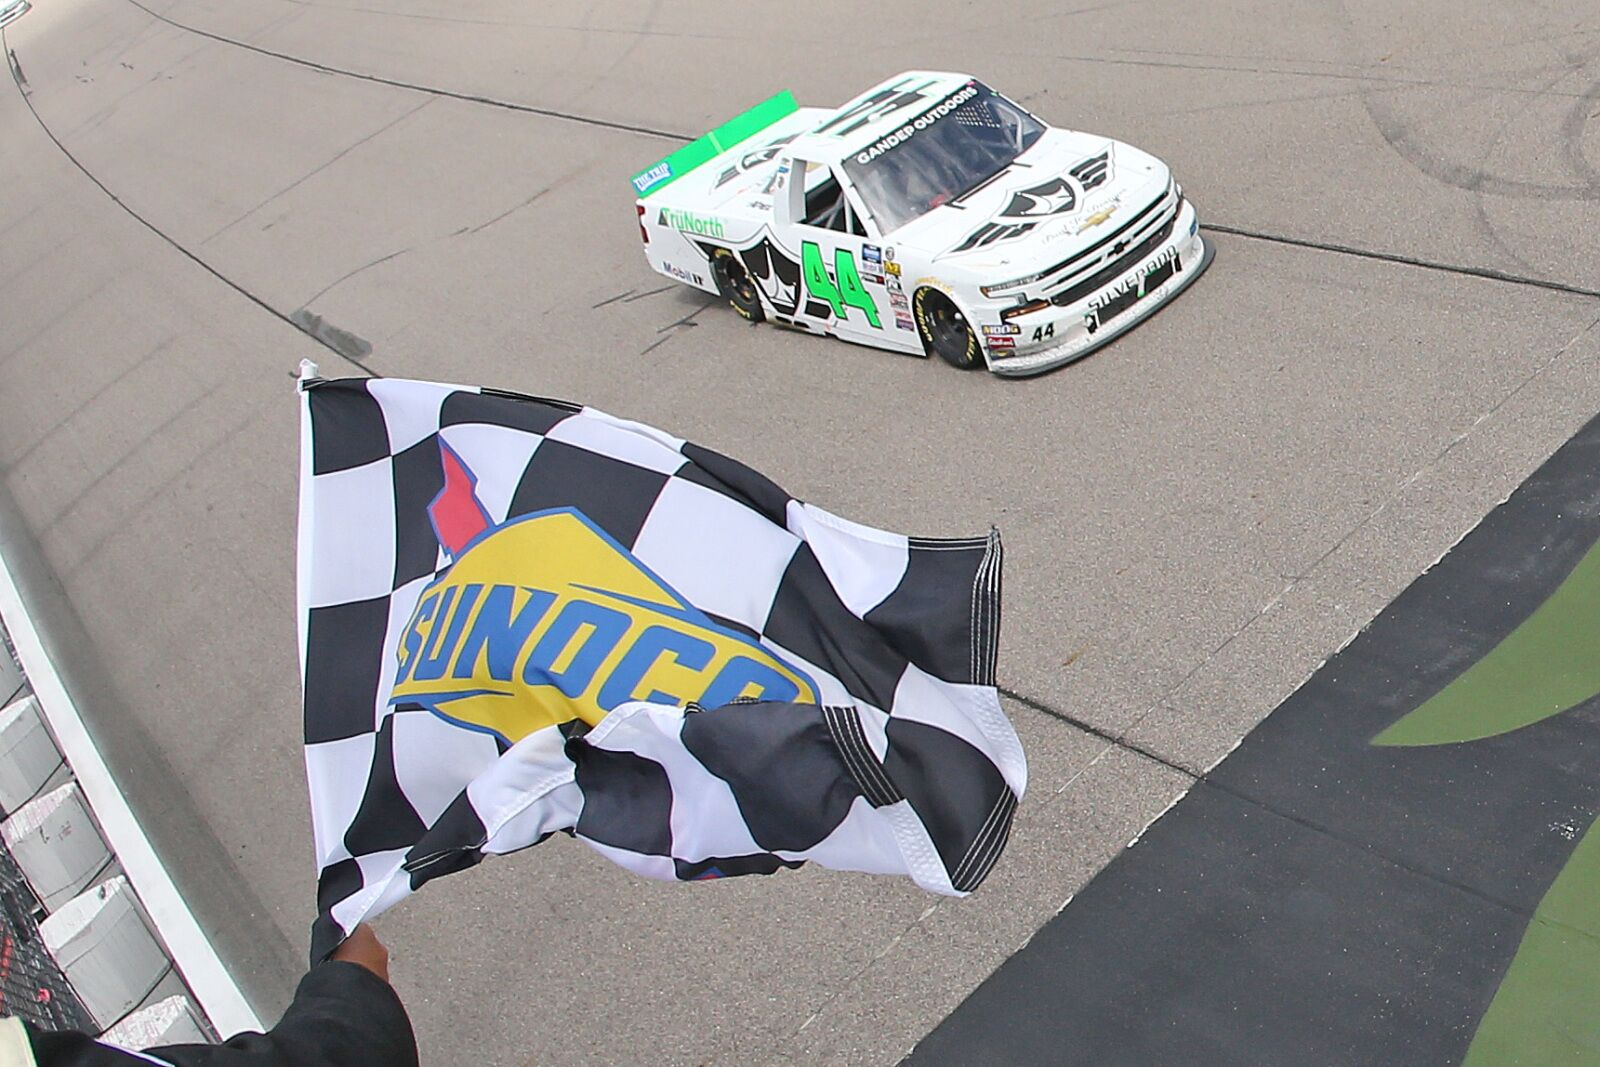 NASCAR Truck Series: Ross Chastain dominates 2019 M&M's 200